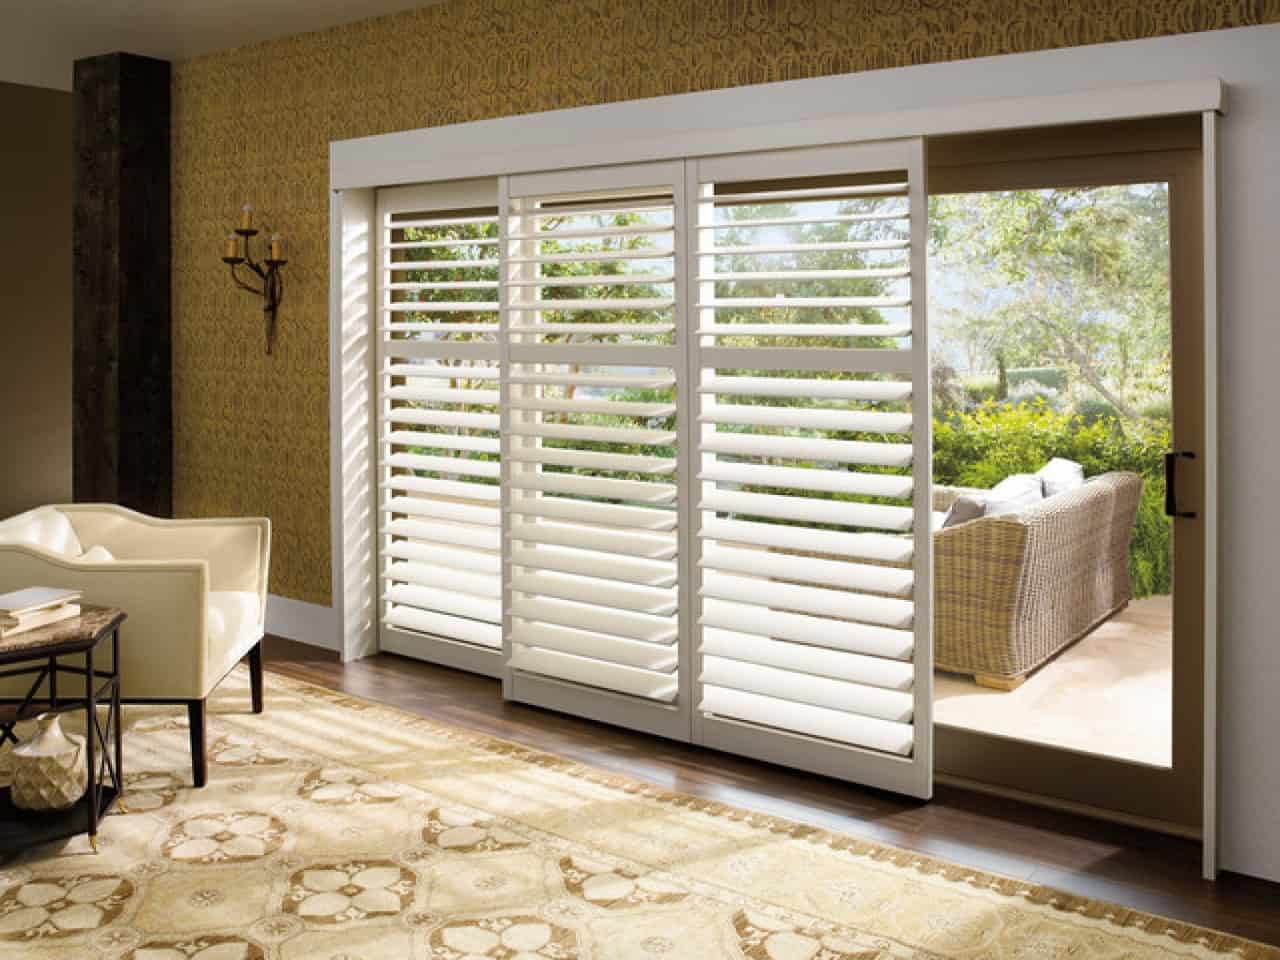 Window treatments for sliding glass doors ideas tips plantation shutters for sliding glass patio doors eventelaan Images